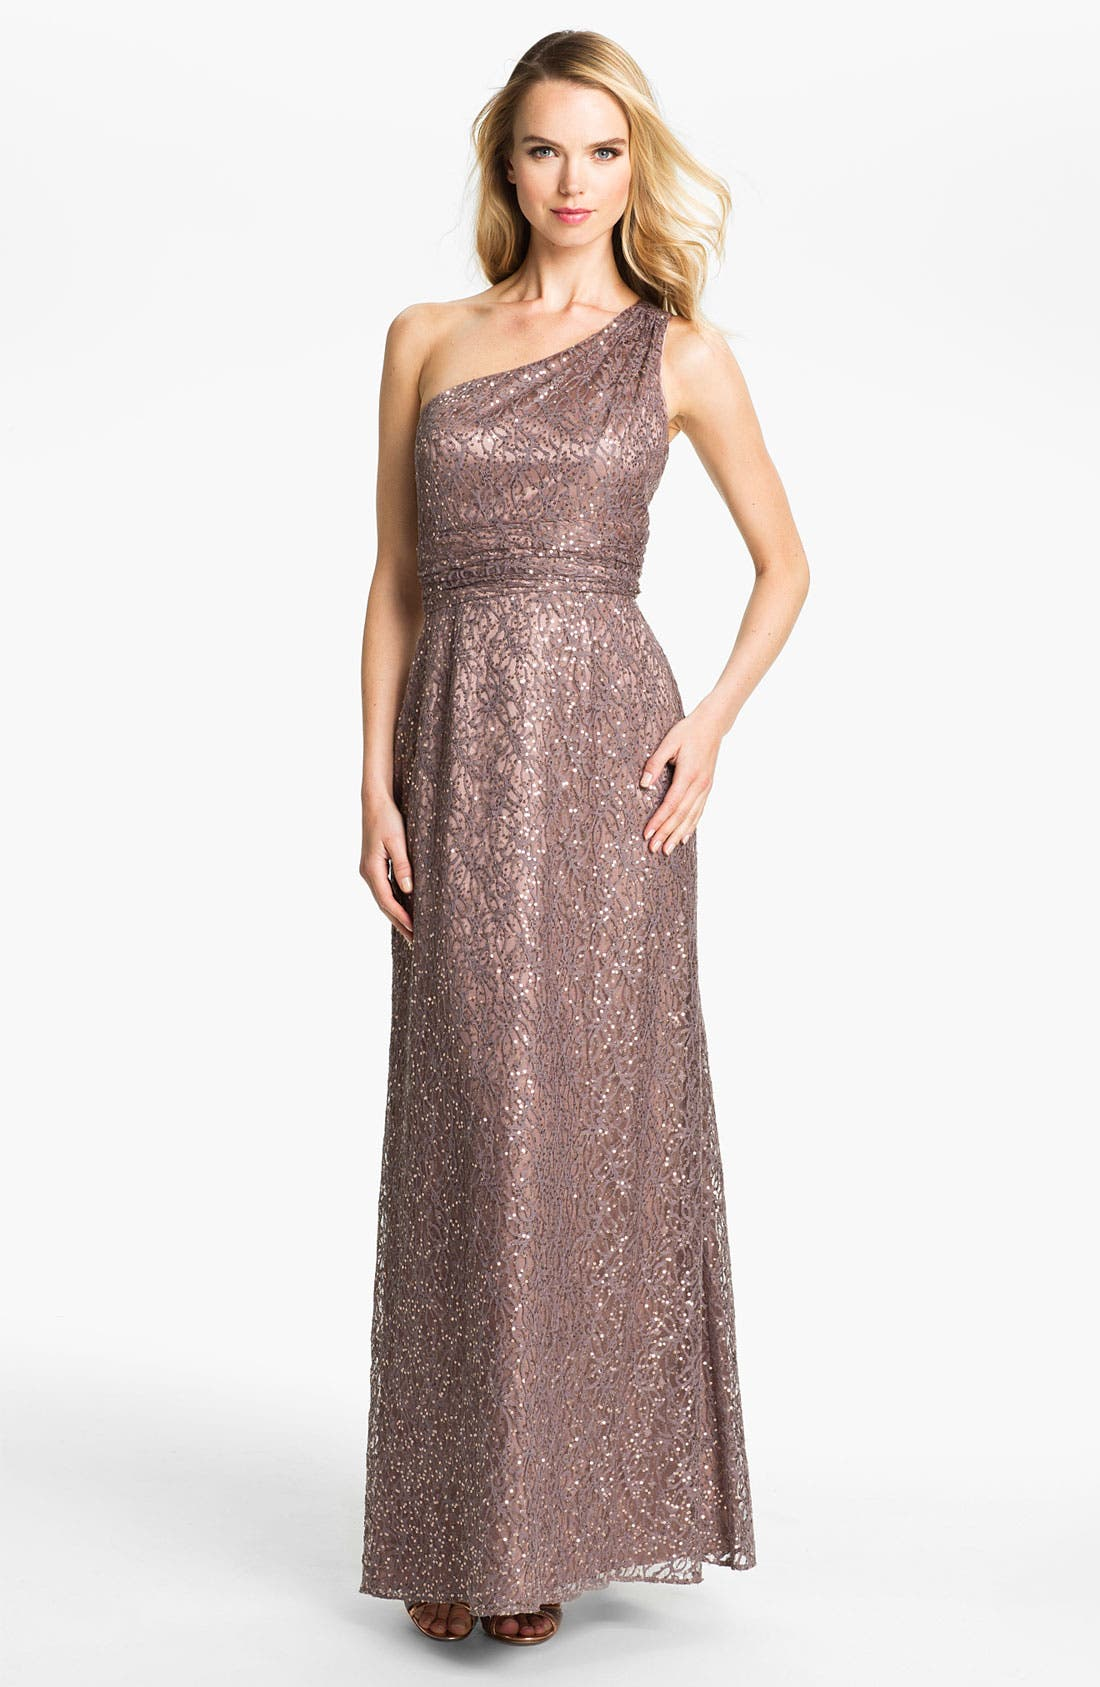 Alternate Image 1 Selected - Hailey by Adrianna Papell One Shoulder Sequin Lace Gown